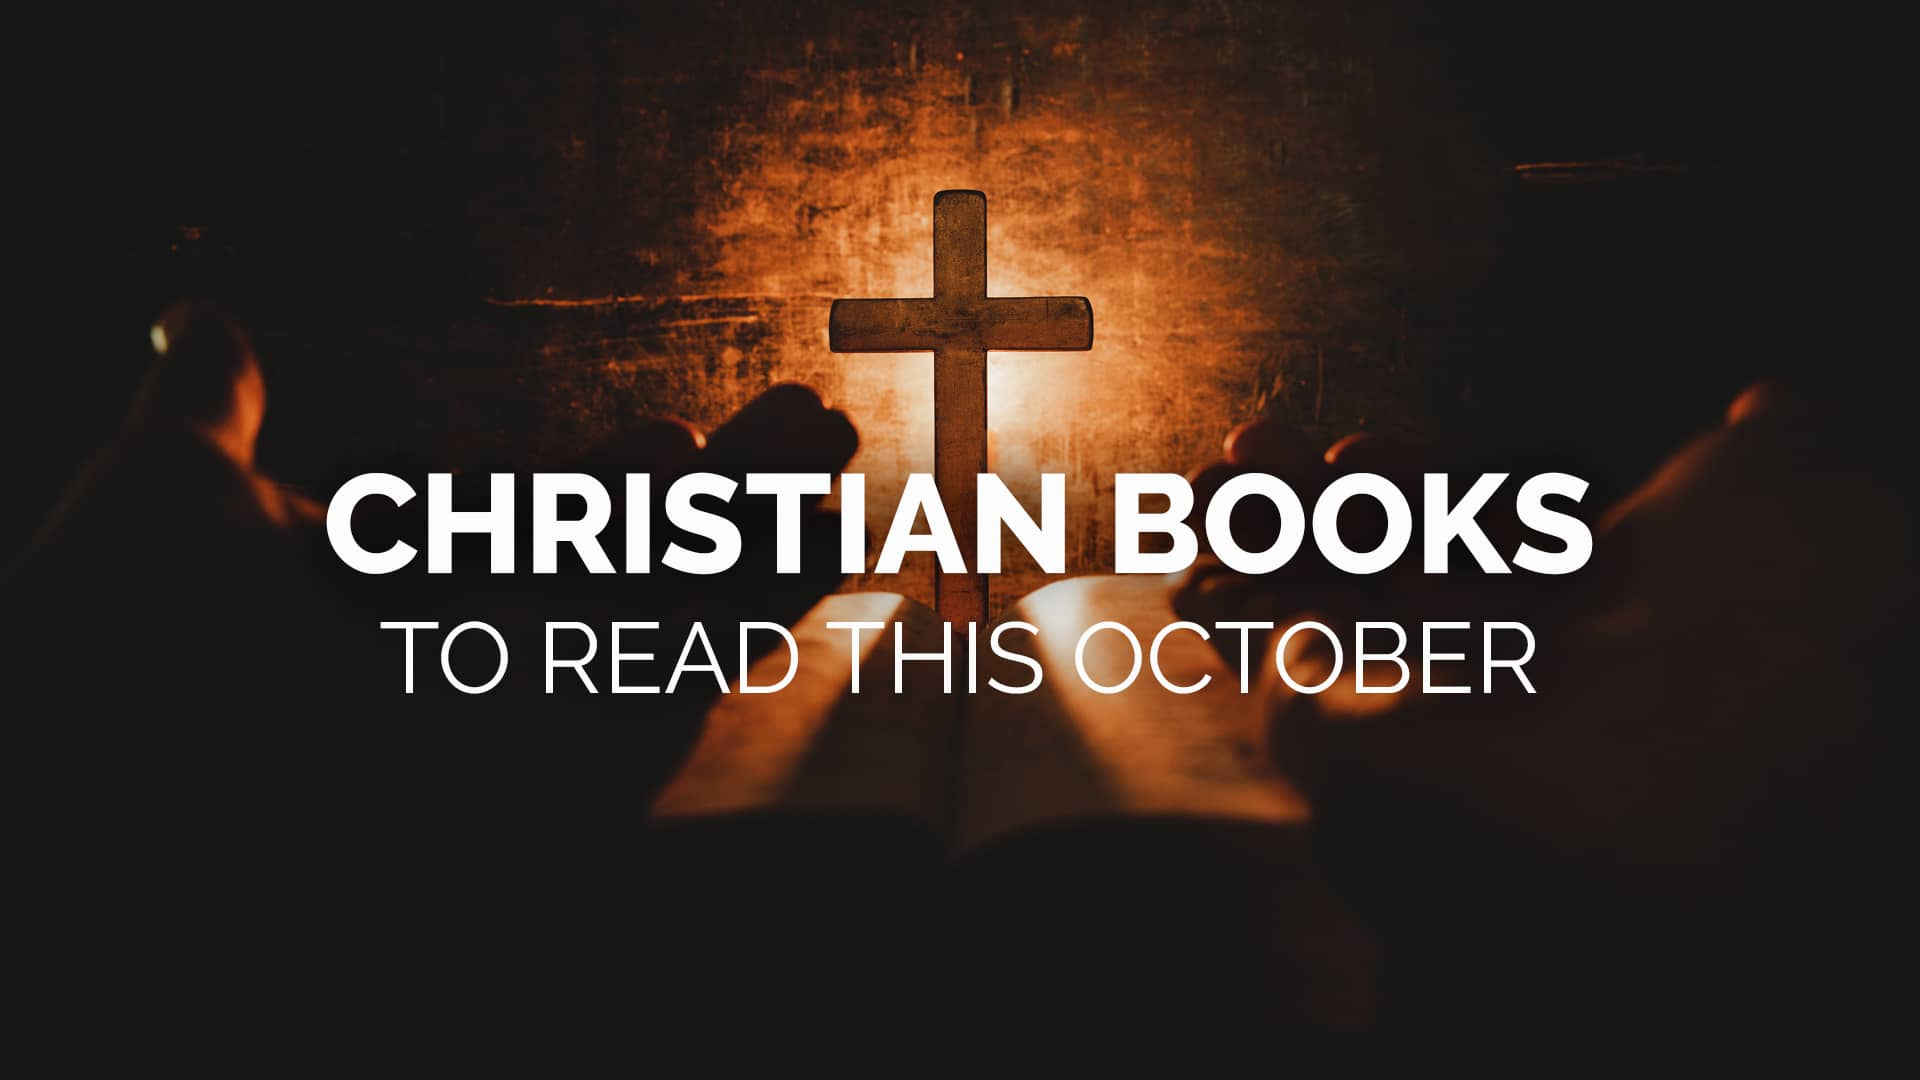 Christian Books to Read this October banner